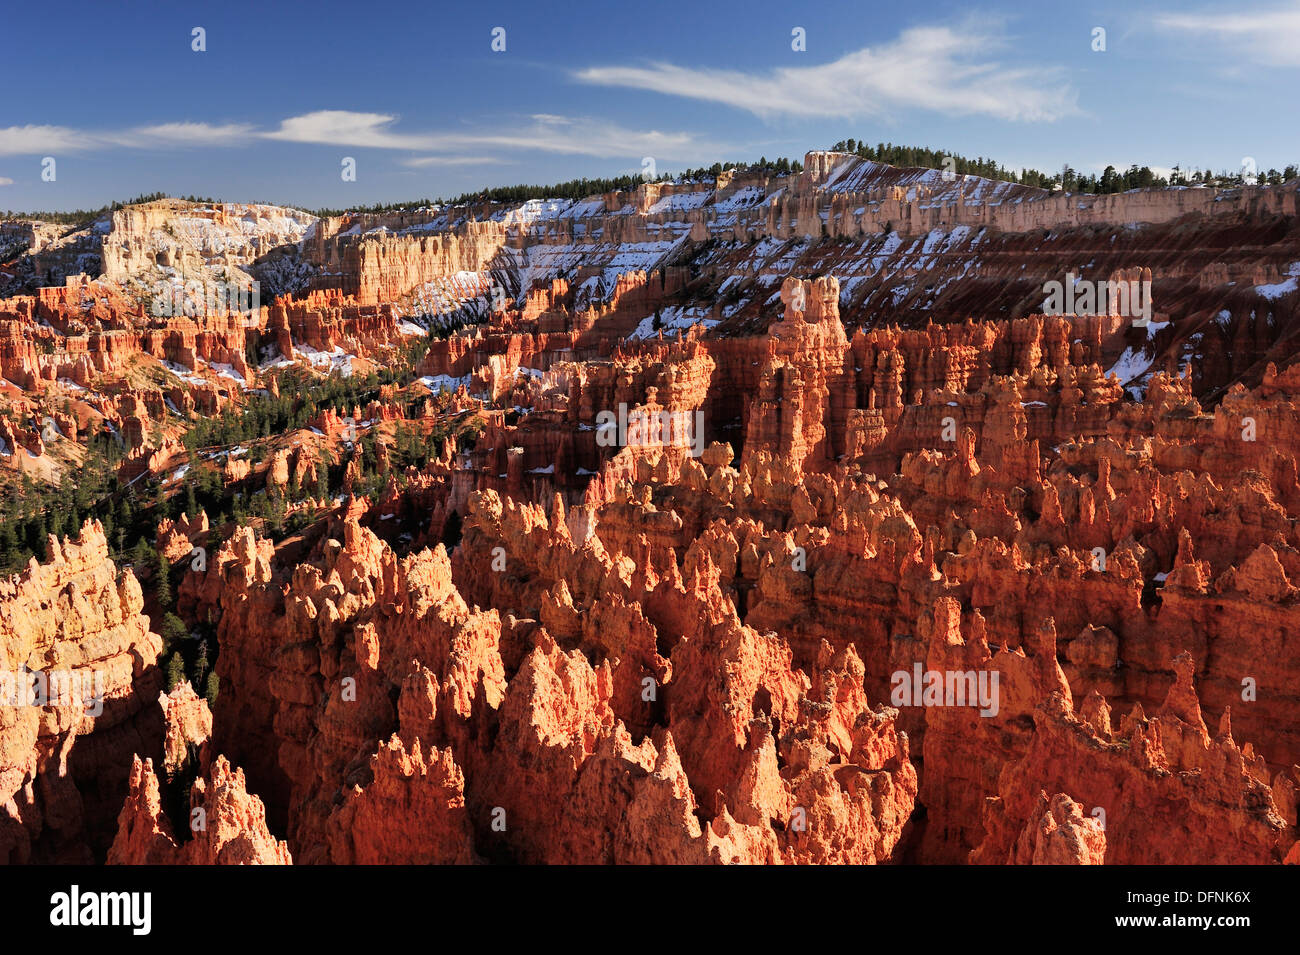 Rock spires in Bryce Canyon, Bryce Canyon National Park, Utah, Southwest, USA, America Stock Photo